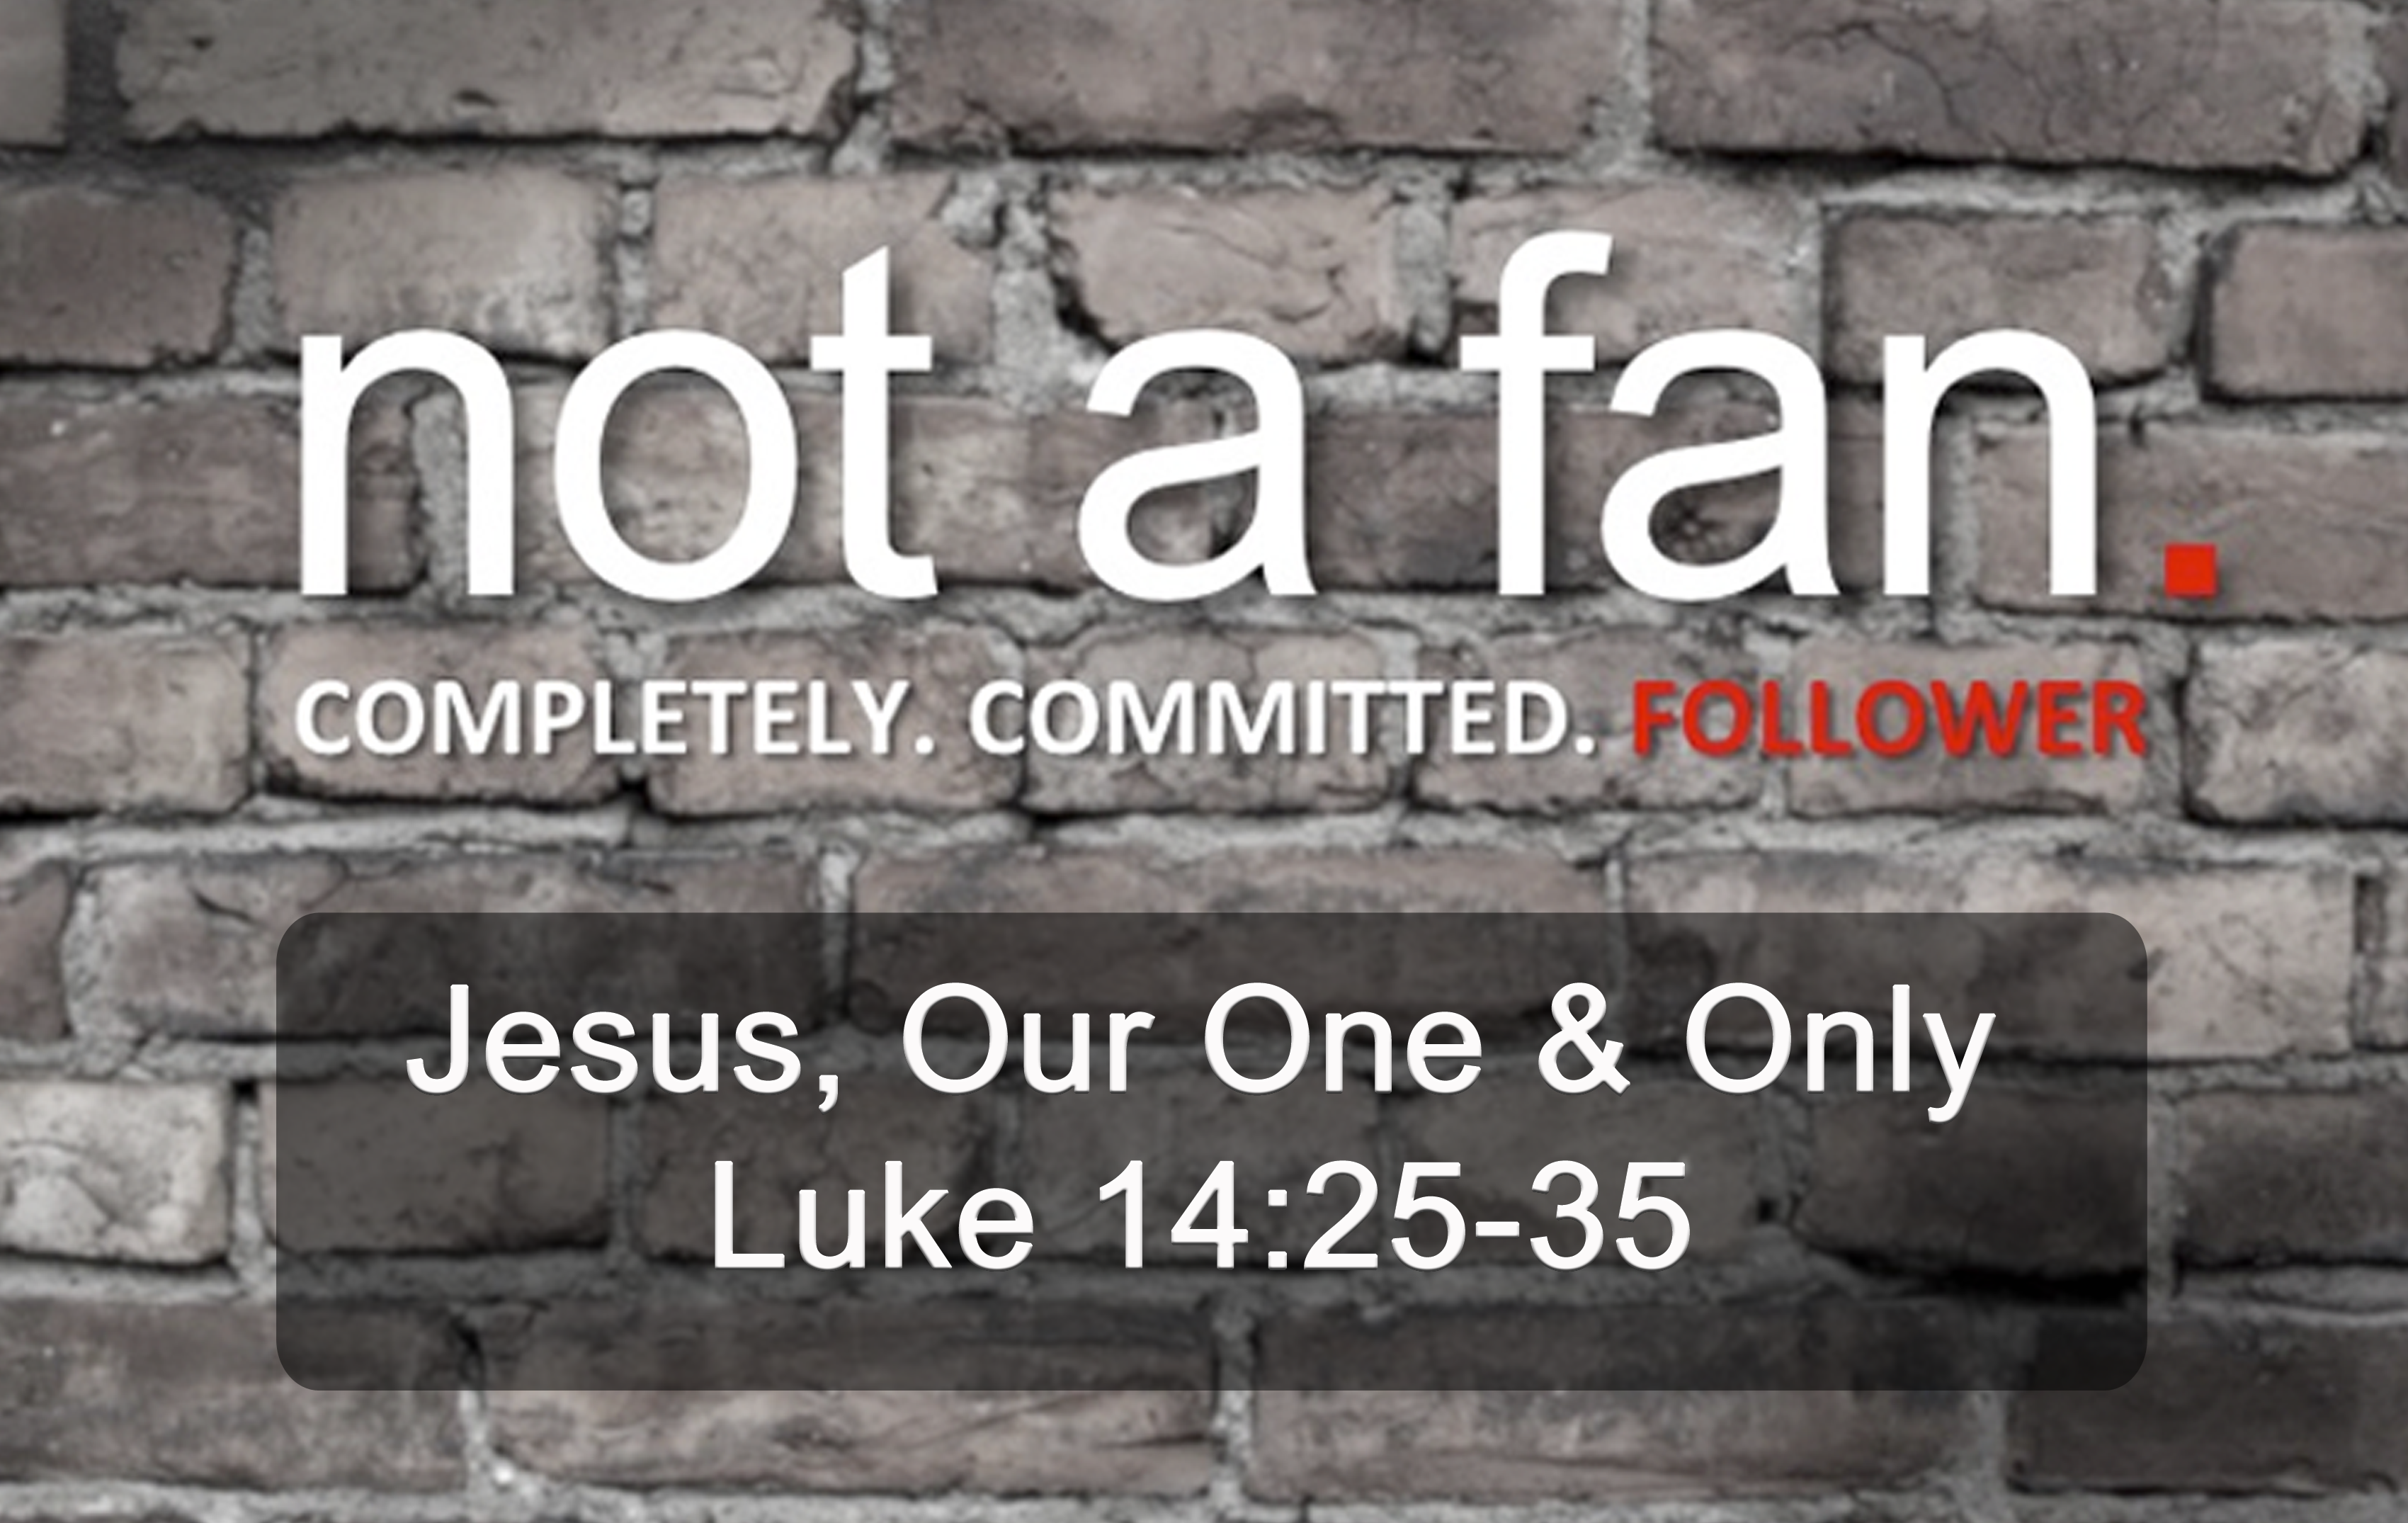 Jesus, Our One & Only